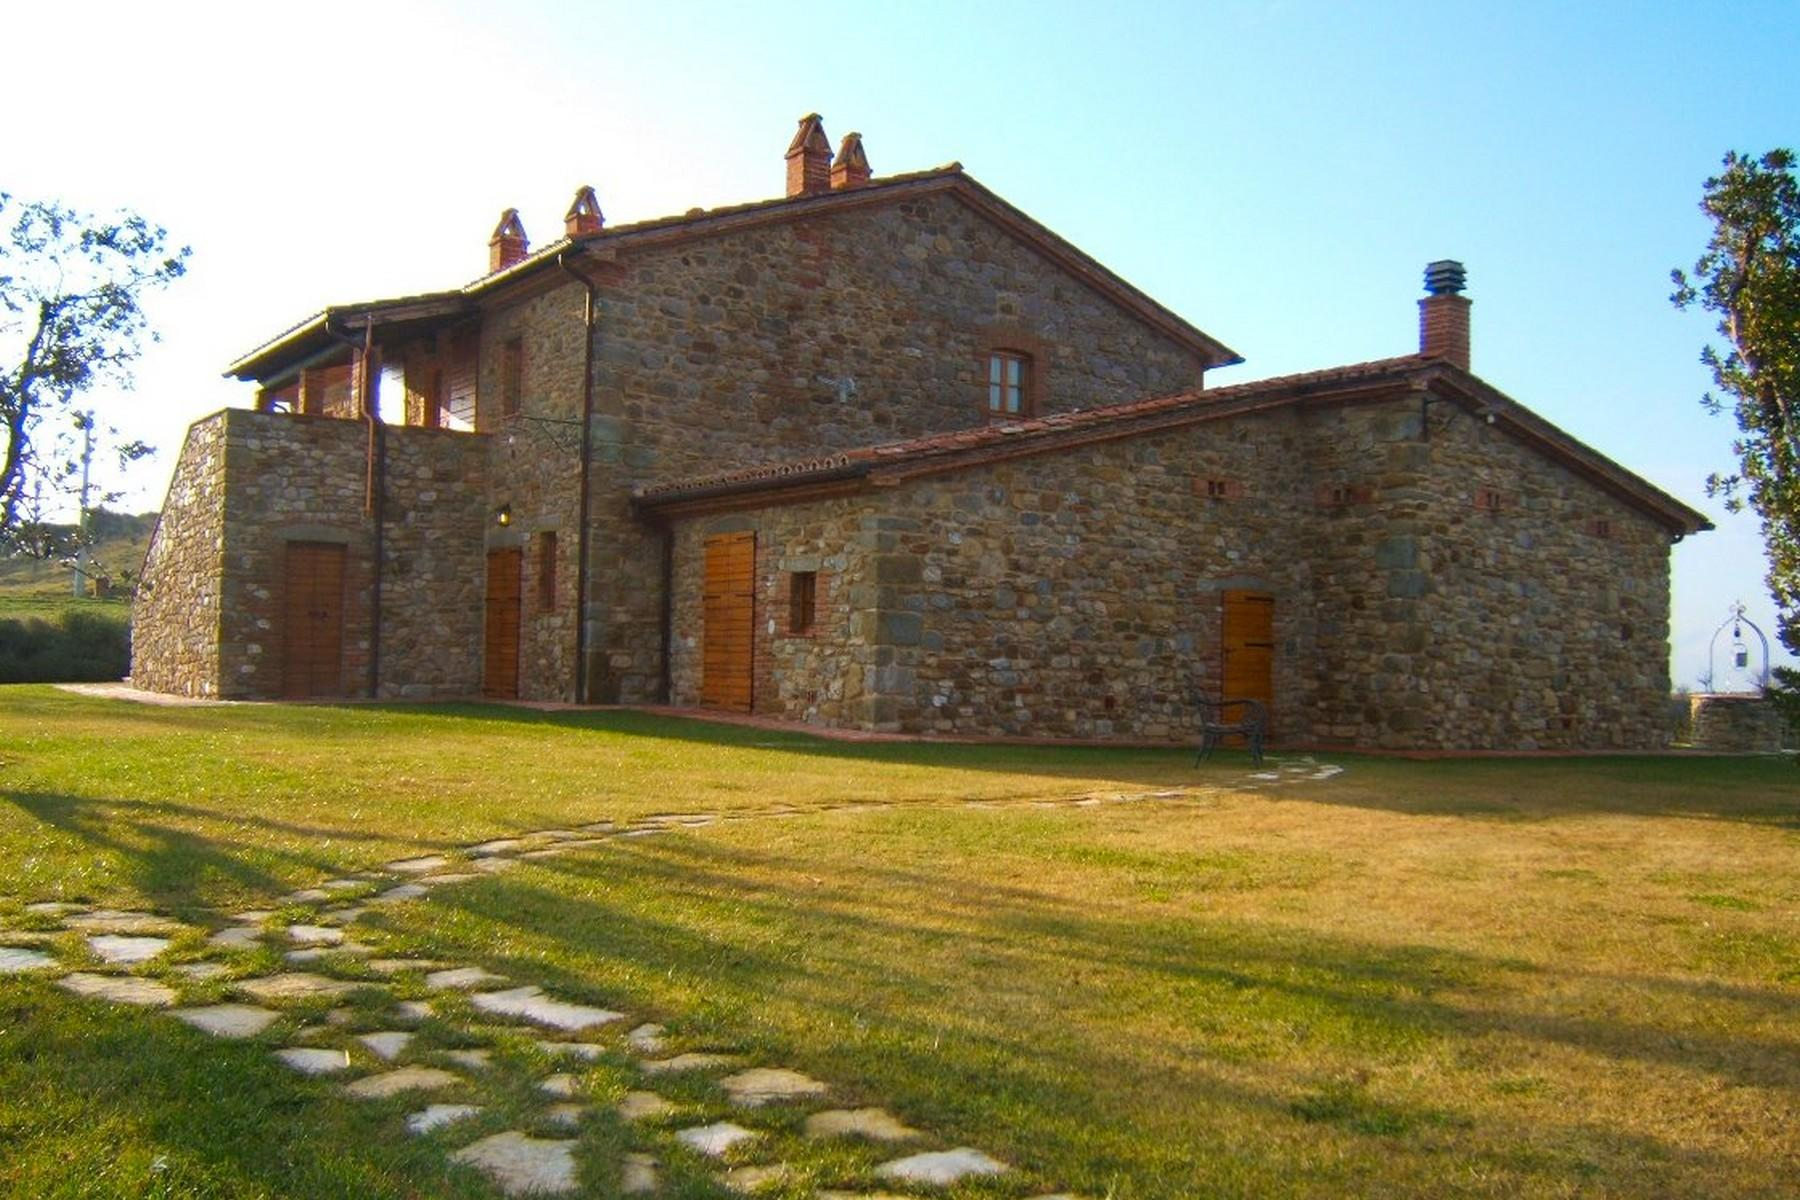 Enchanting farmhouse in Umbrian countryside - 10